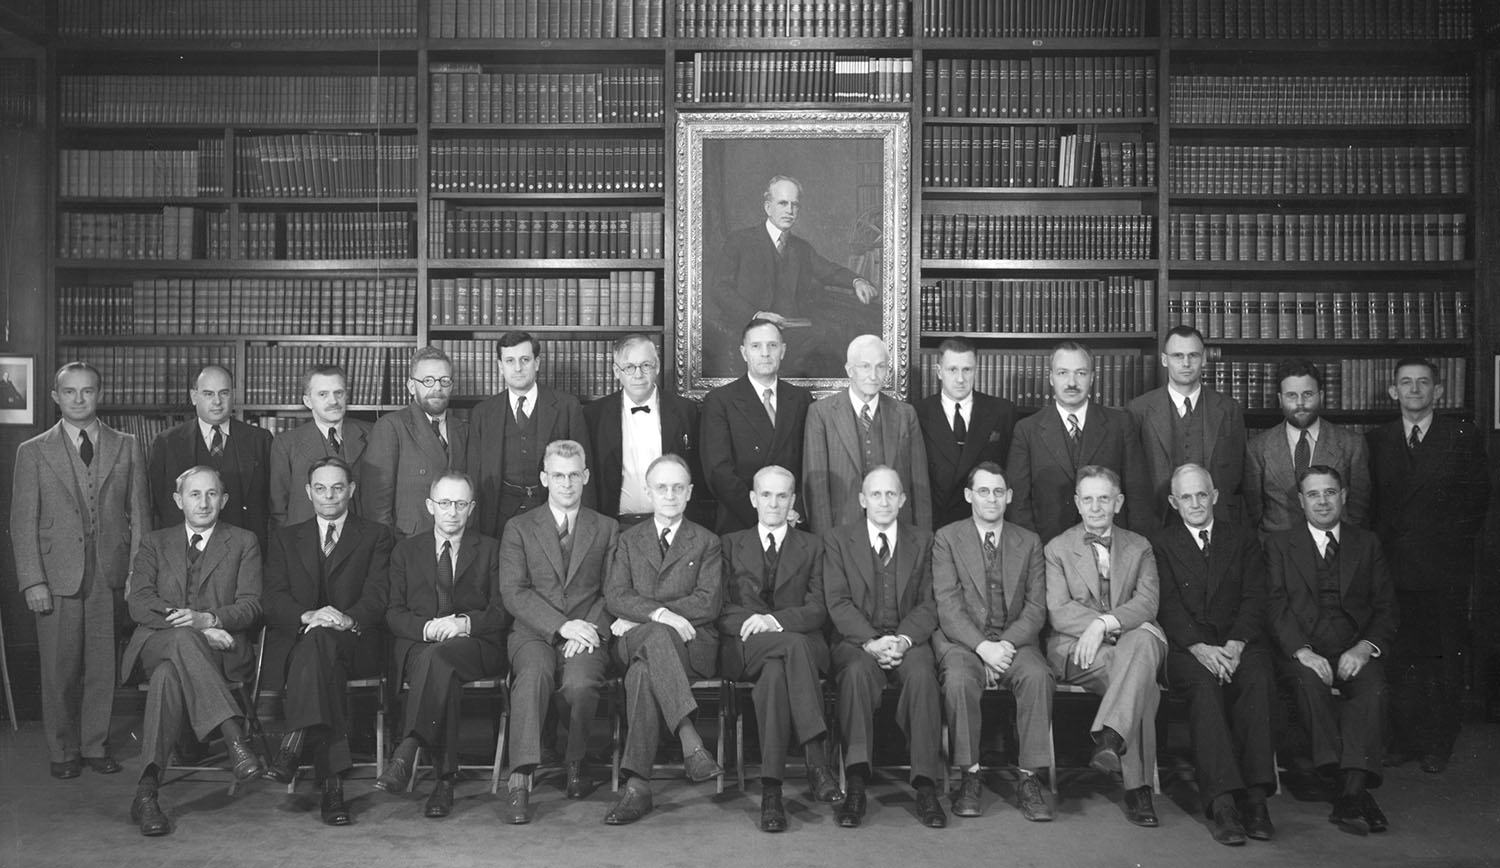 Group portrait of Observatories' staff astronomers, taken 1939